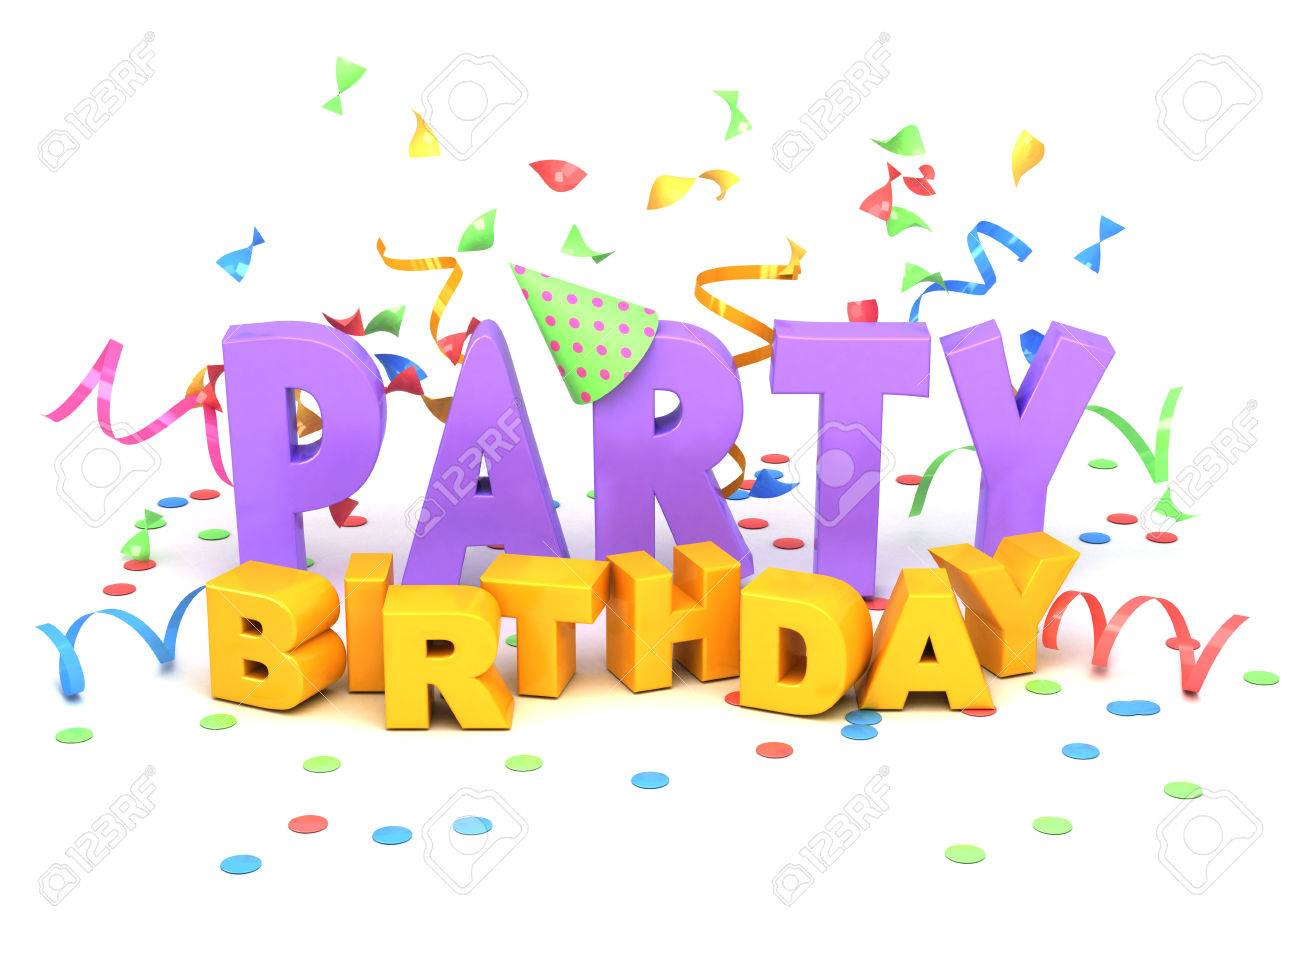 birthday party words on white background stock photo picture and